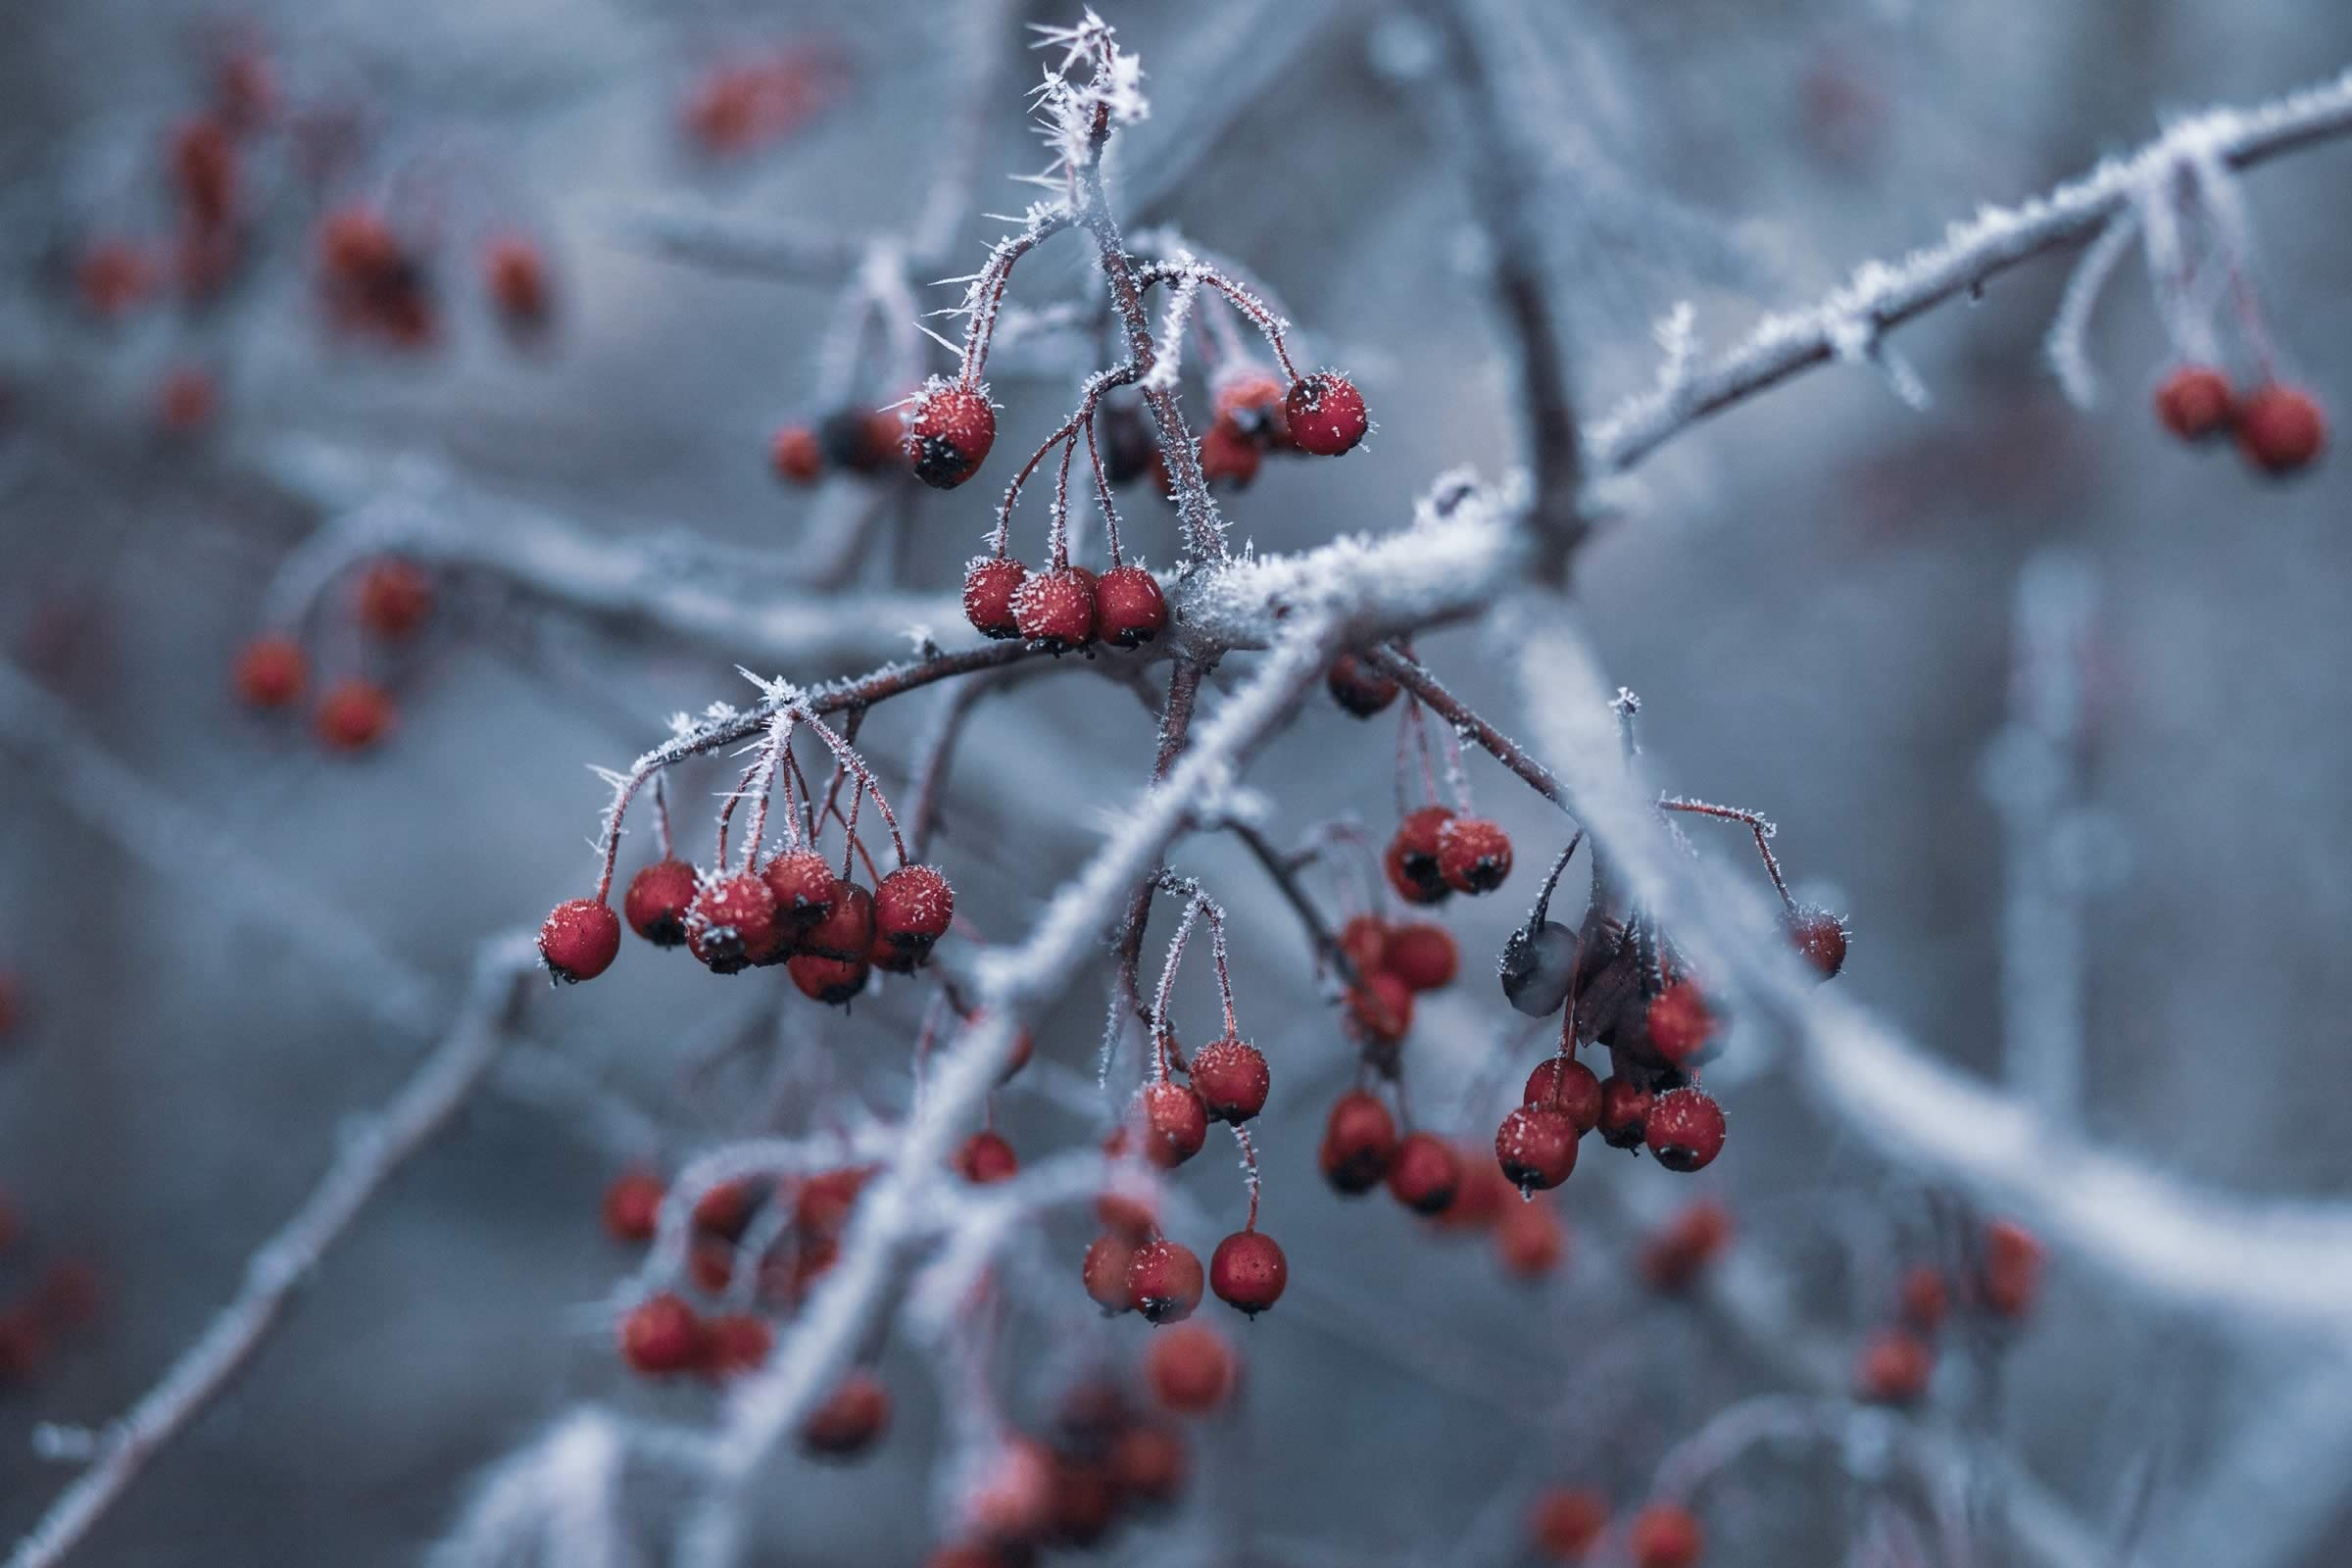 Red berries with ice